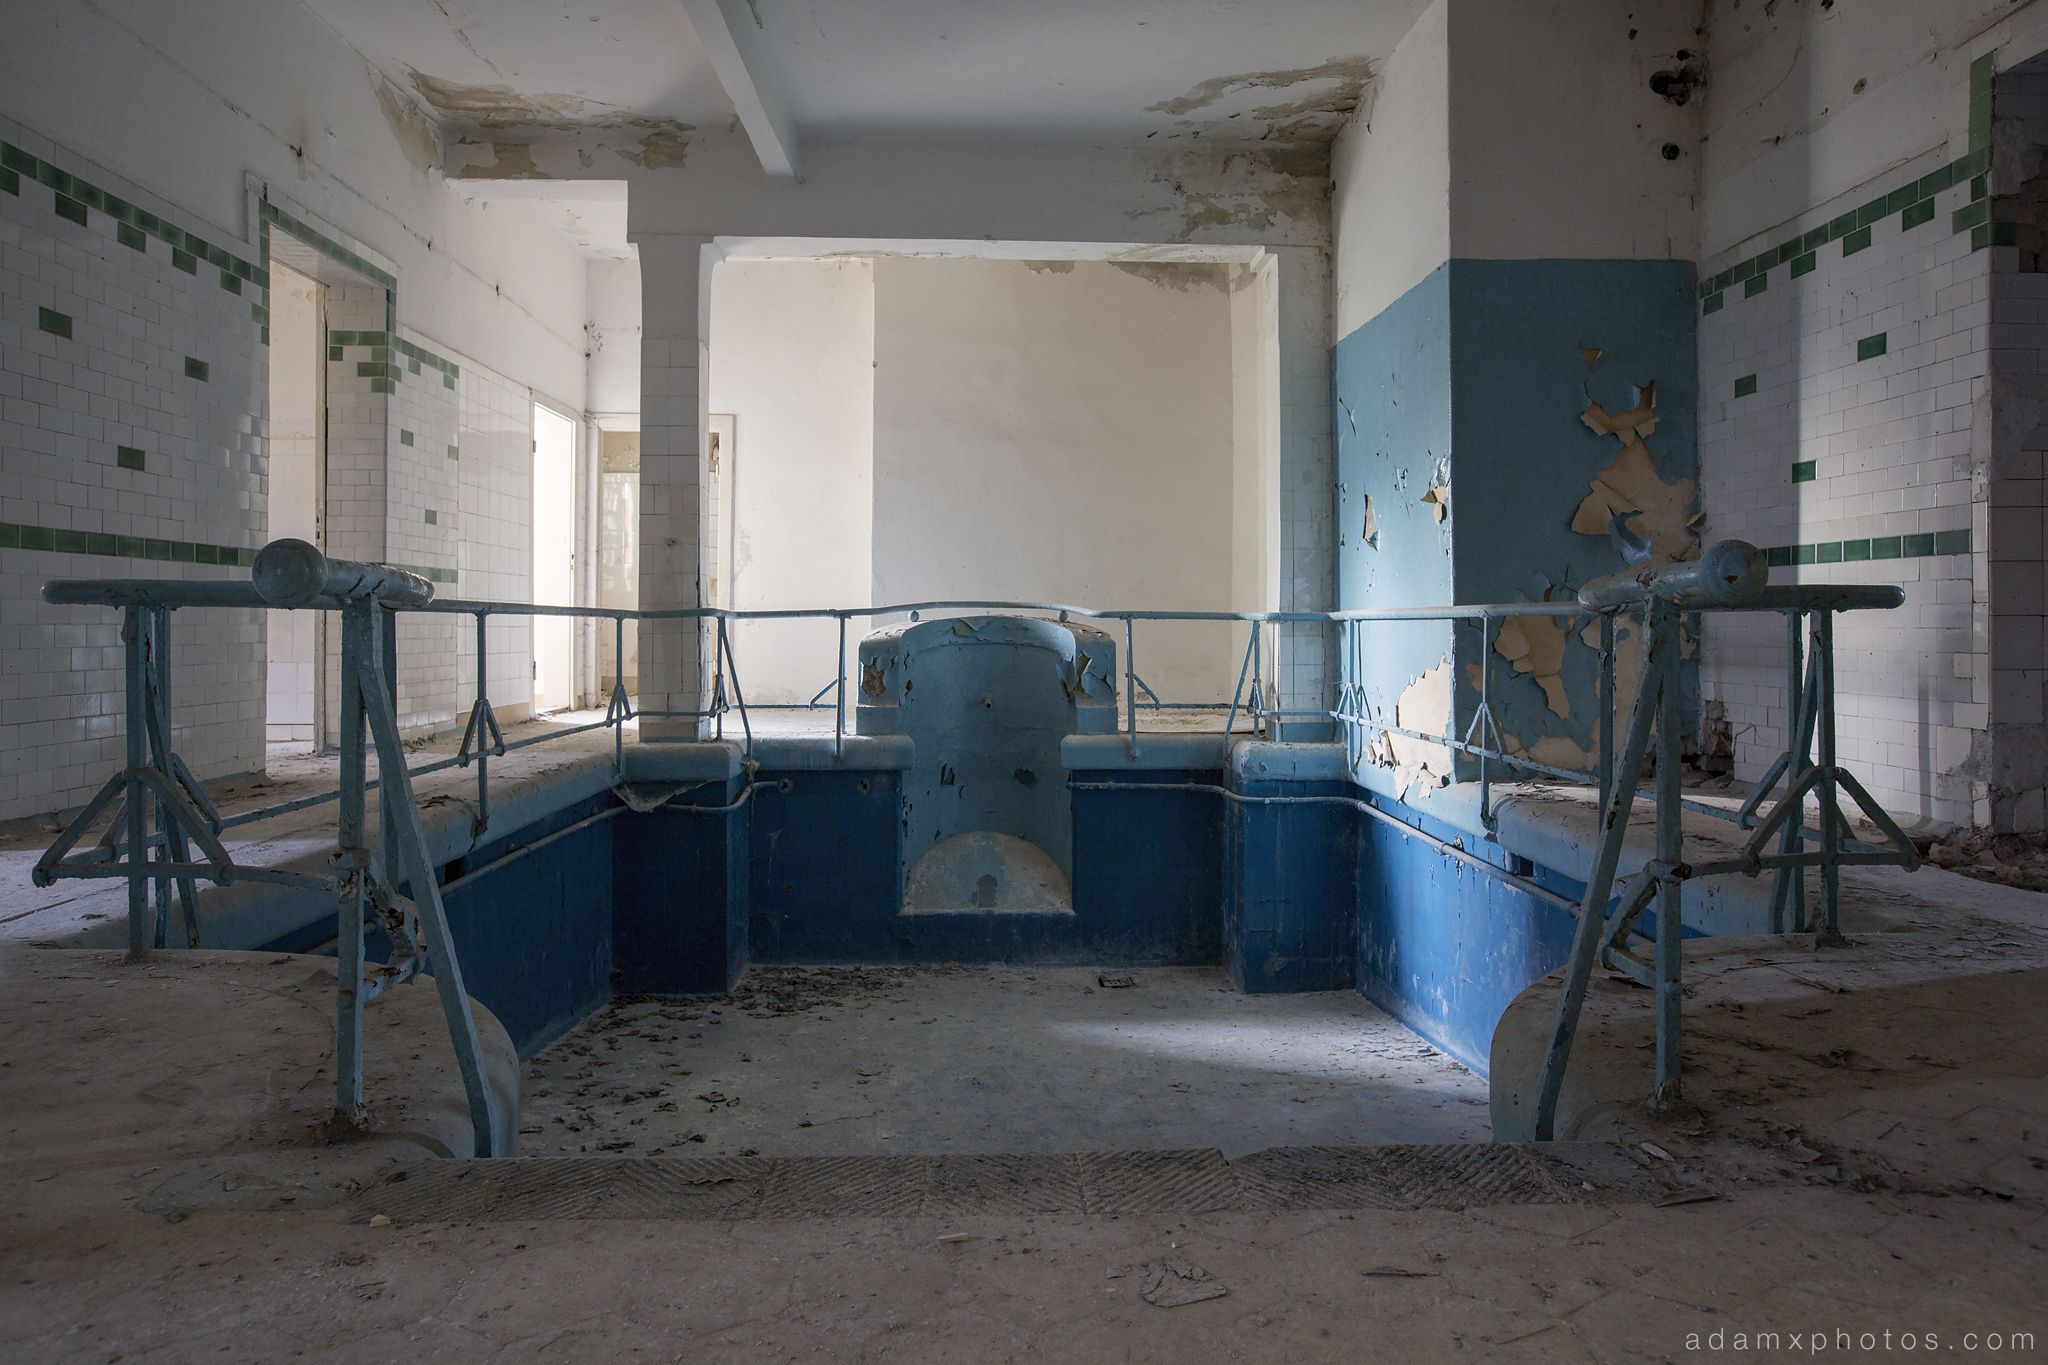 Adam X Urbex Heilstatten Hohenlychen Germany Urban Exploration Decay Lost Abandoned Hidden plunge pool swimming pool schwimmbad blue tiles sports sanatorium